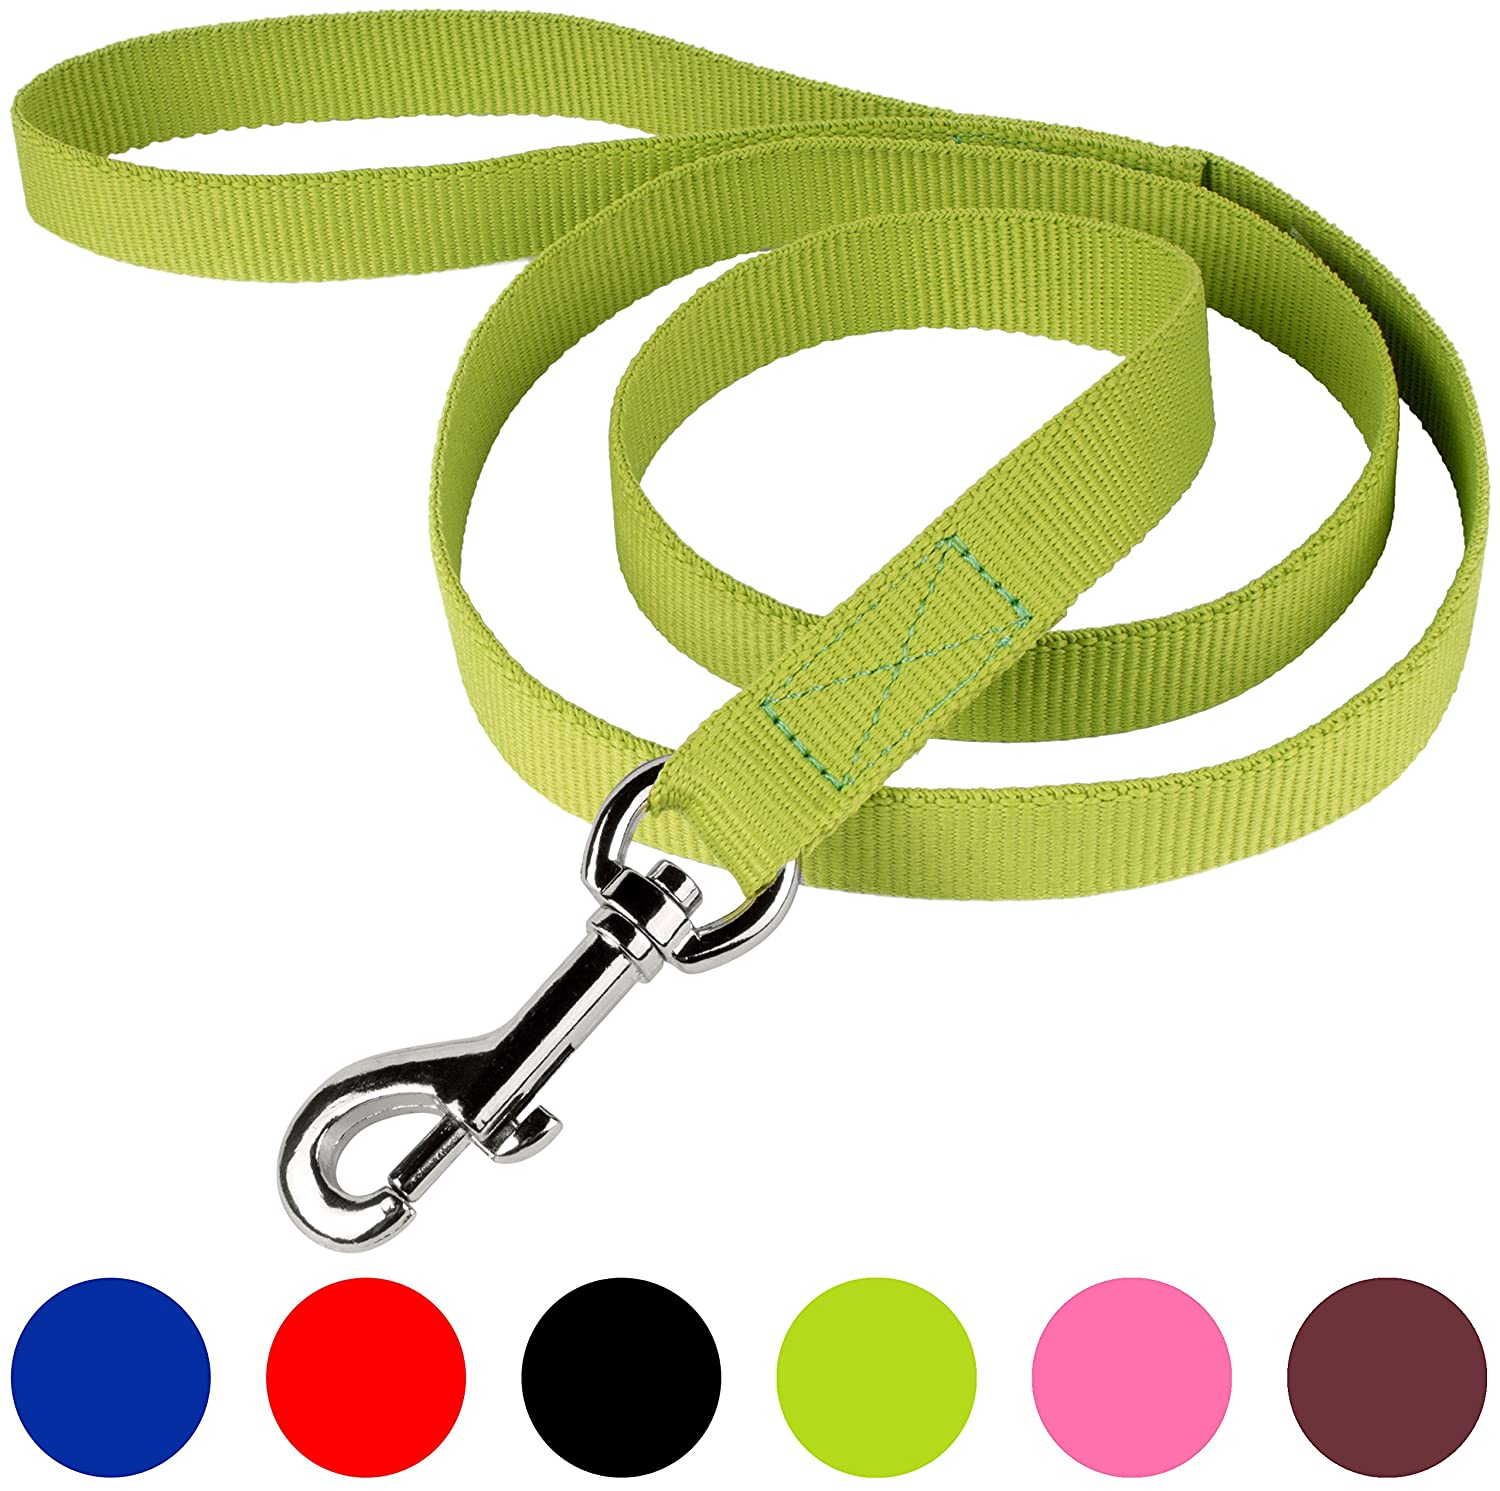 Lime Green 5 8\ Lime Green 5 8\ CollarDirect Nylon Dog Leash 4ft and 6 ft Long, Training Dog Leash Nylon, Two Dogs Leash 4 or 6 feet Long, Puppy Nylon Leash Lead Small Medium Large Black (5 8  Wide 4 ft Long, Lime Green)